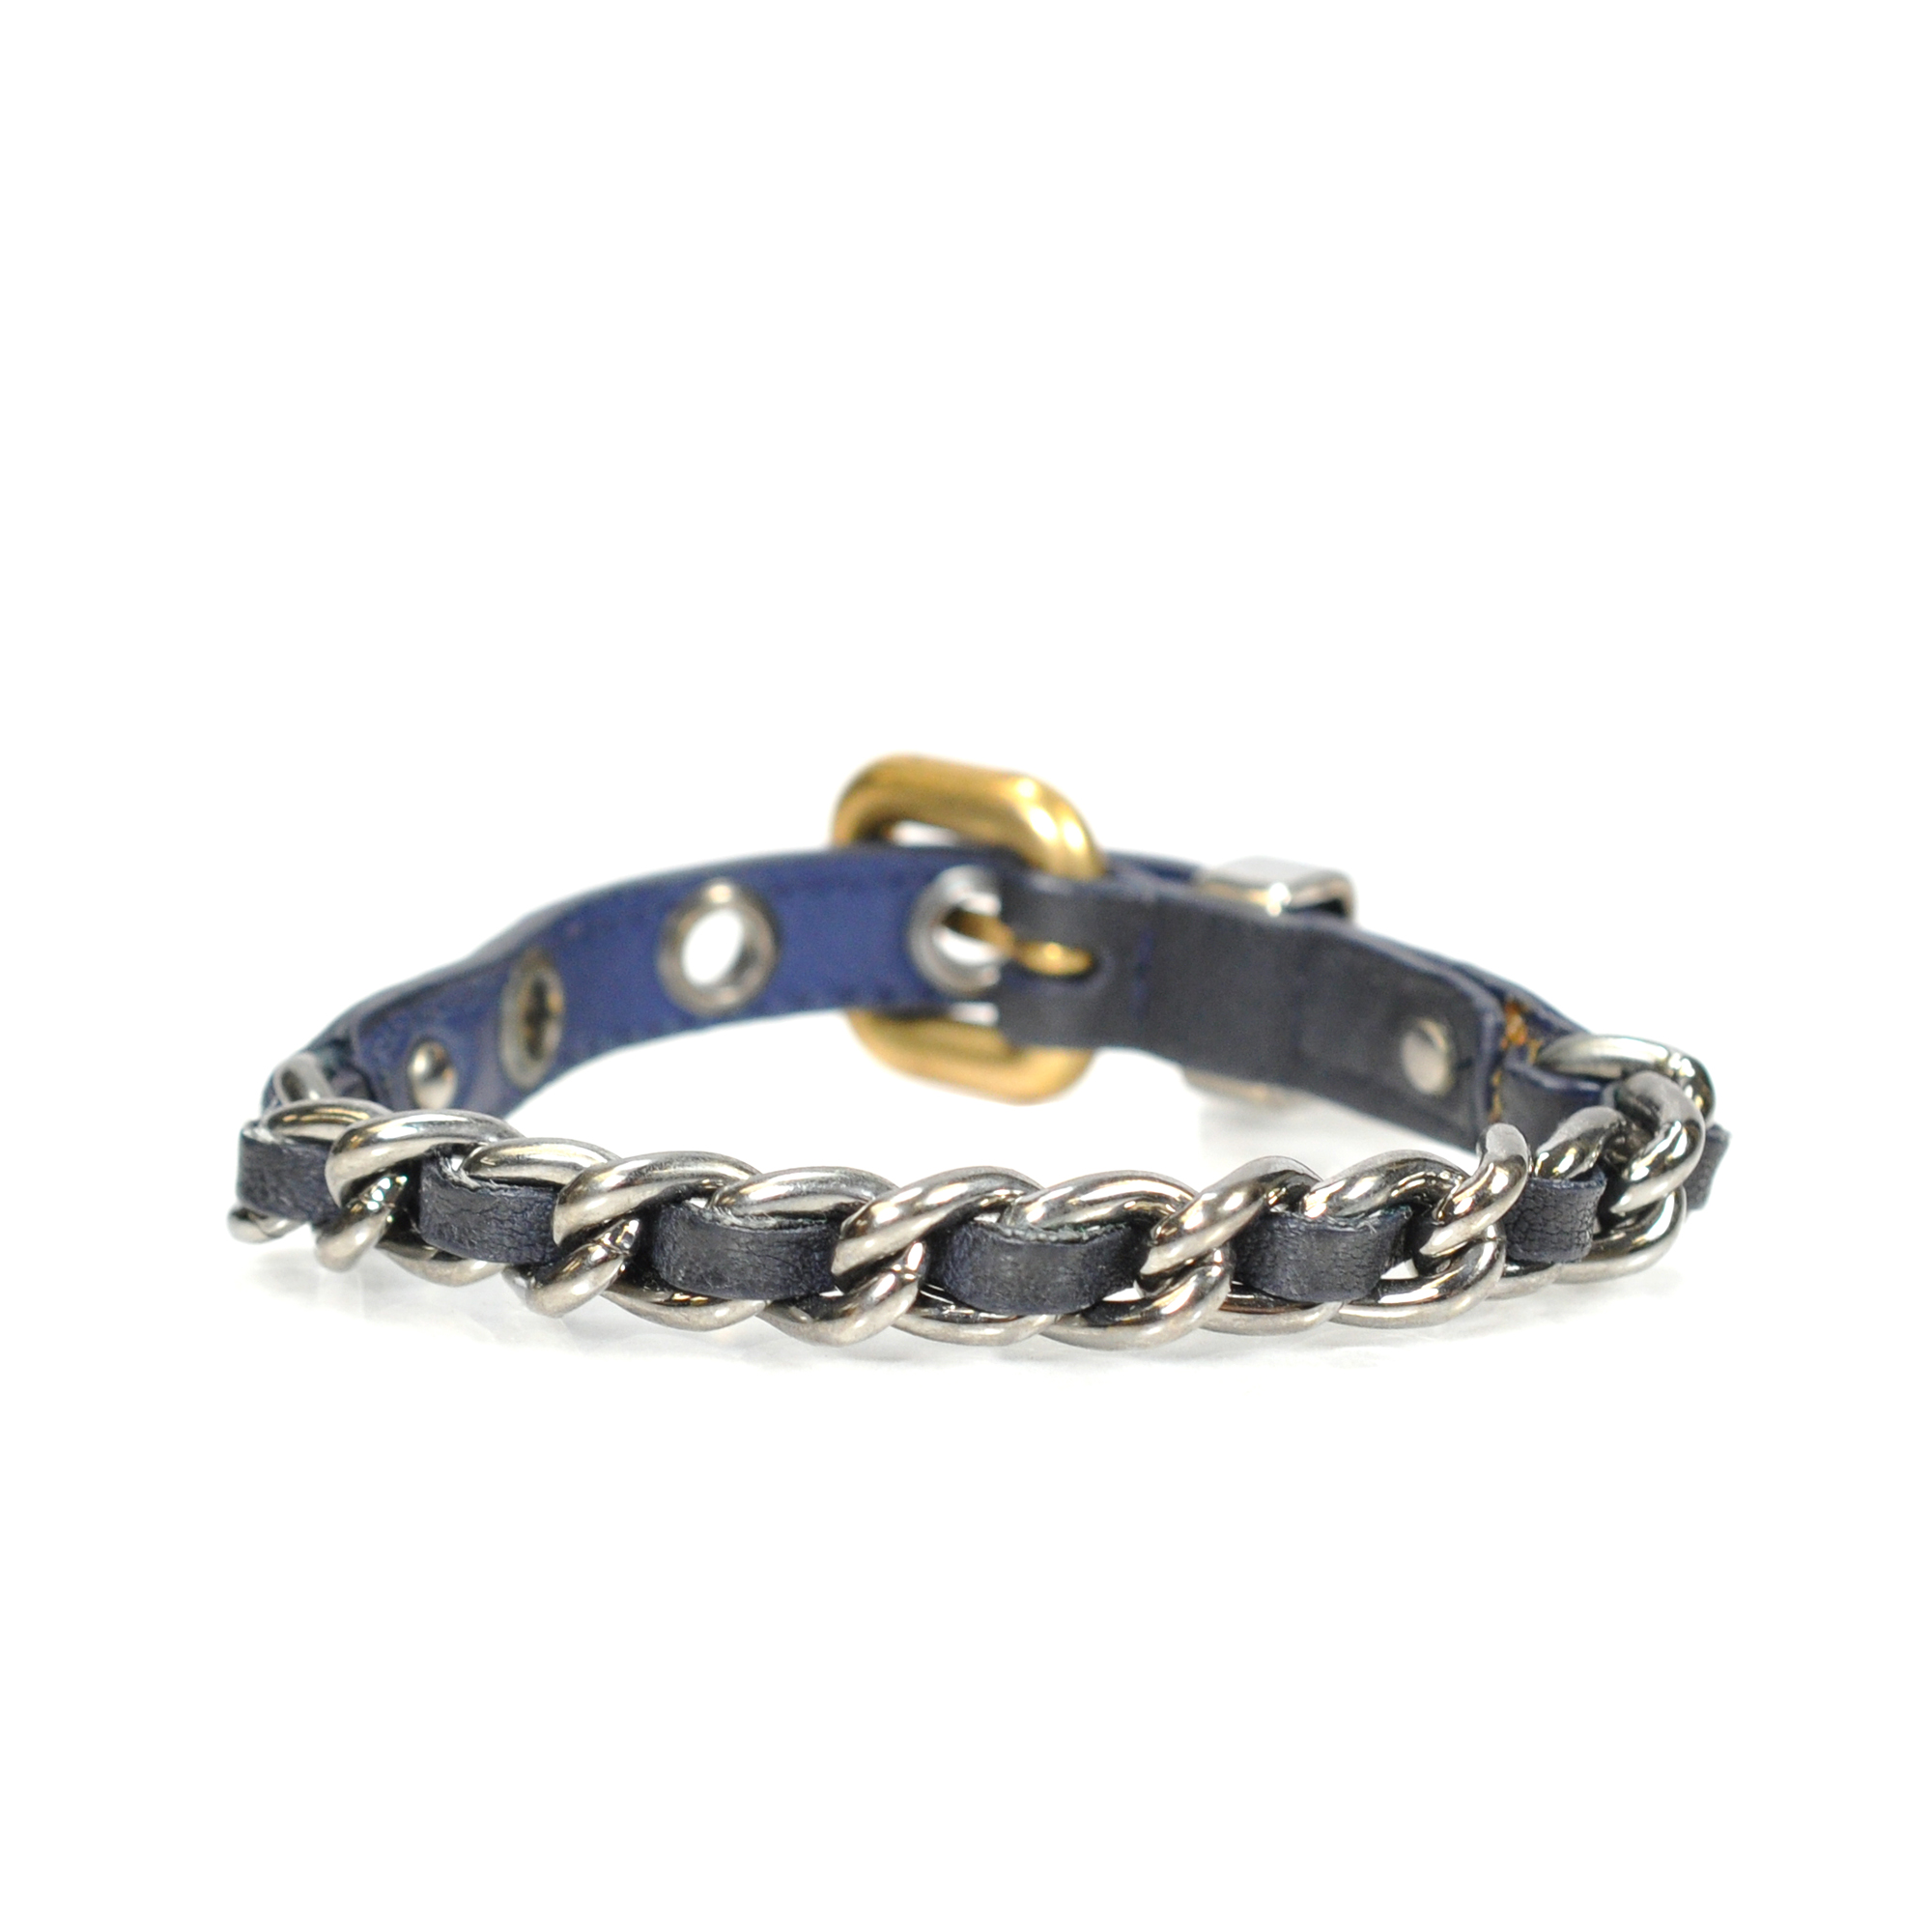 58bfb66d2b4 ... The Fifth Collection Authentic Pre Owned Miu Weave Chain Bracelet Pss  063 00005